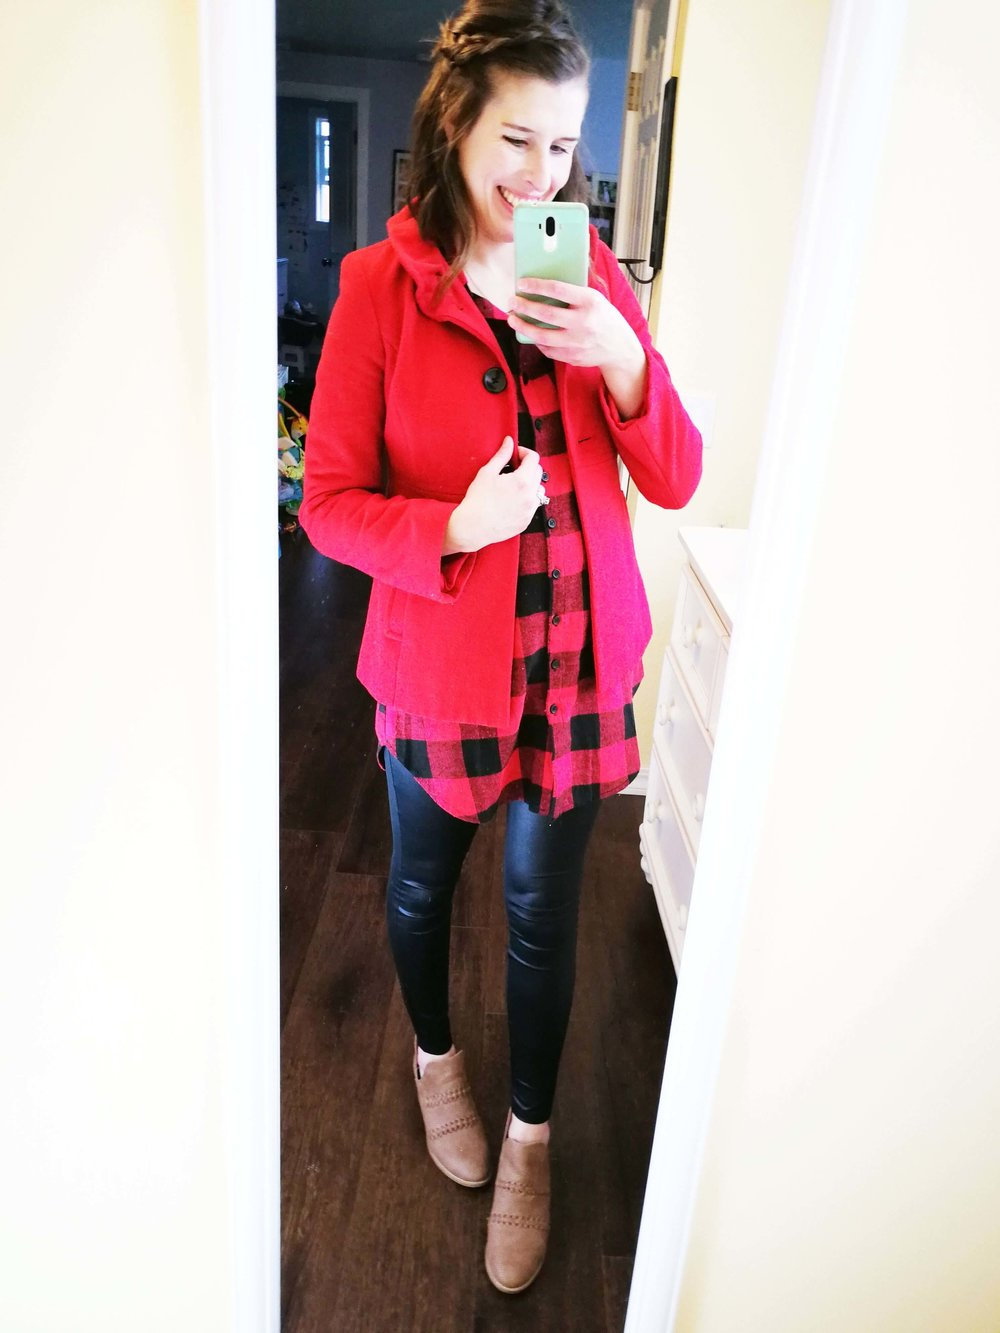 or With ankle boots…